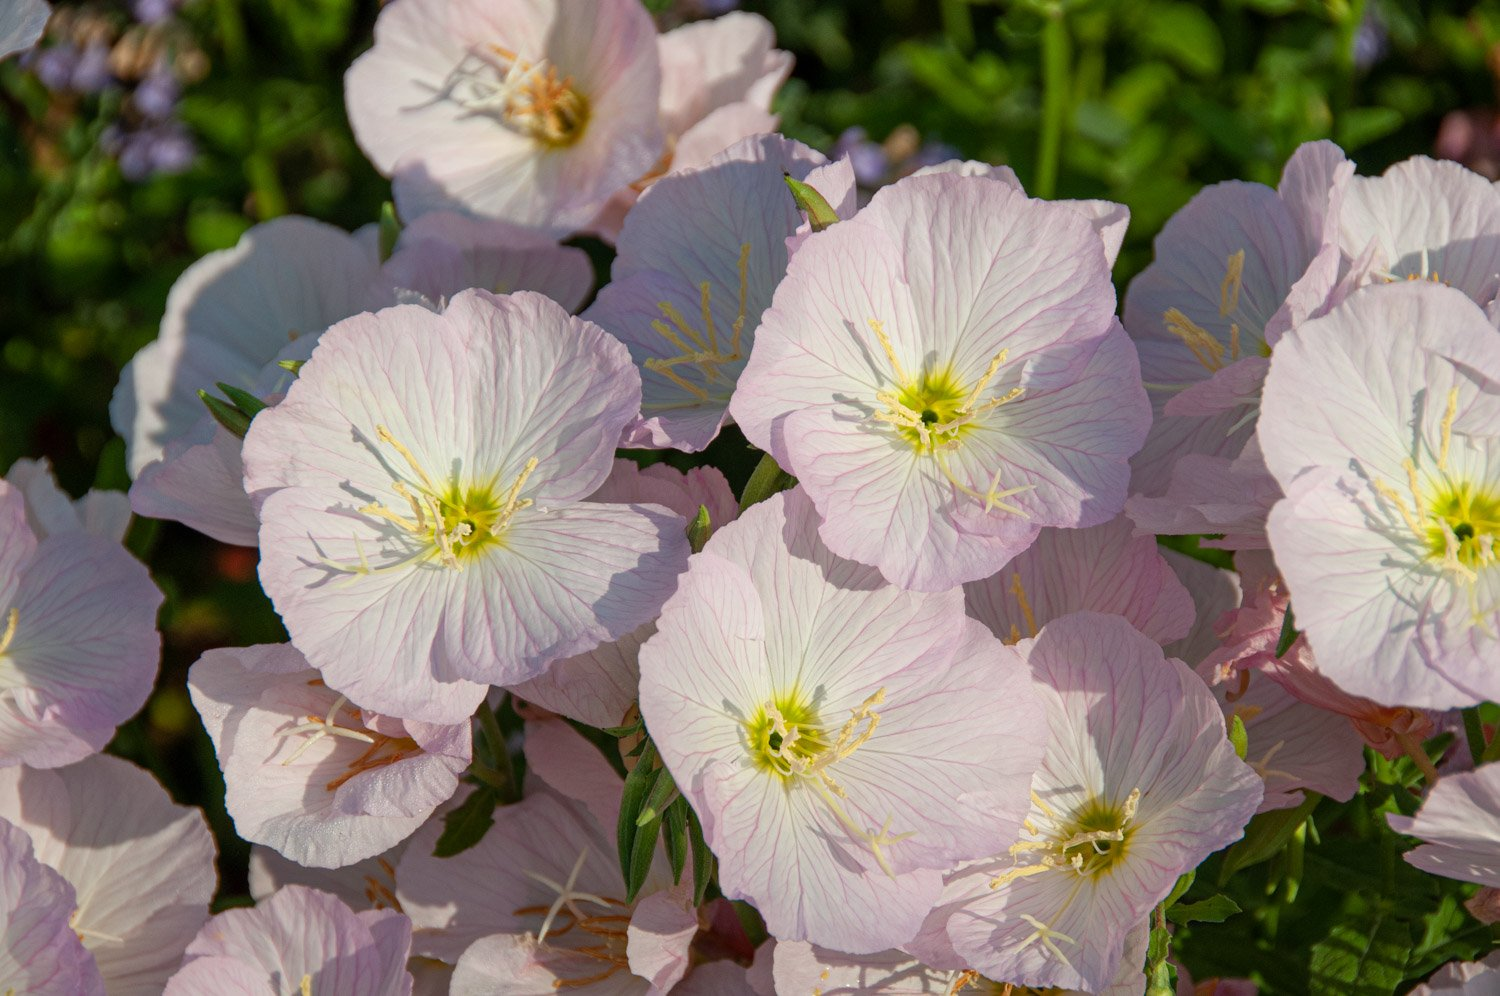 Pink Evening Primrose with sunny yellow centers